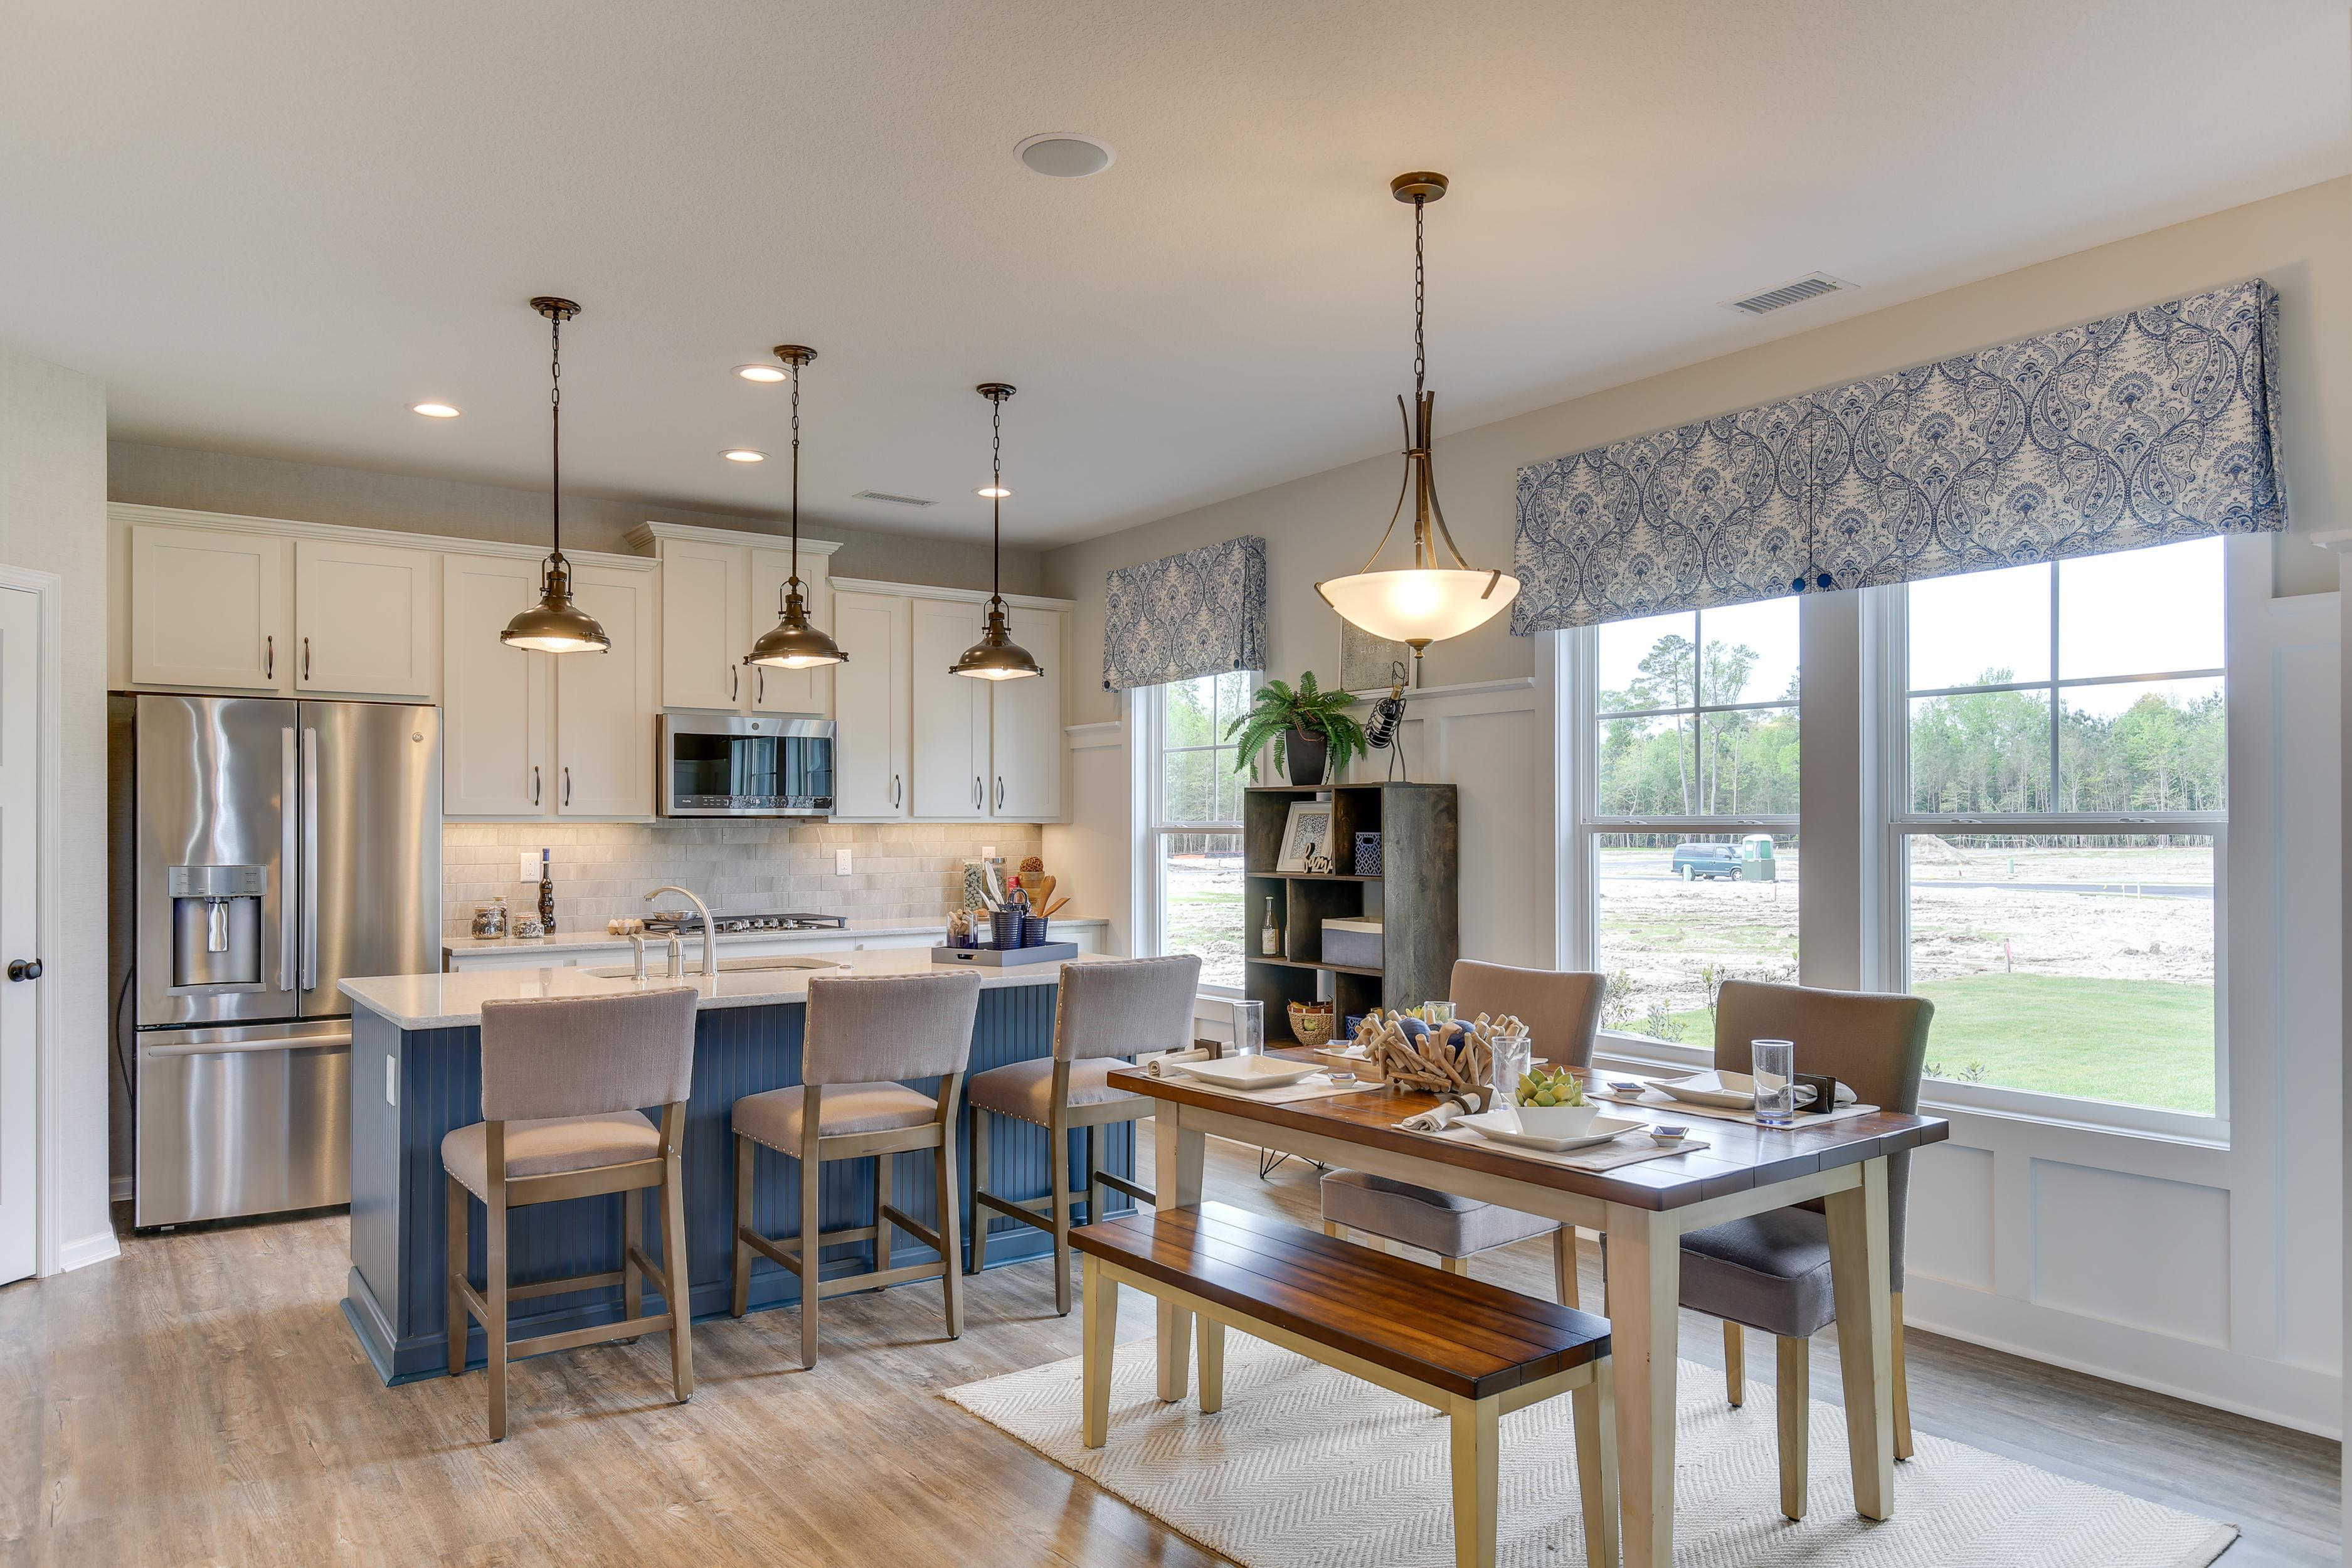 'Kings Fork Village' by Napolitano Homes in Norfolk-Newport News